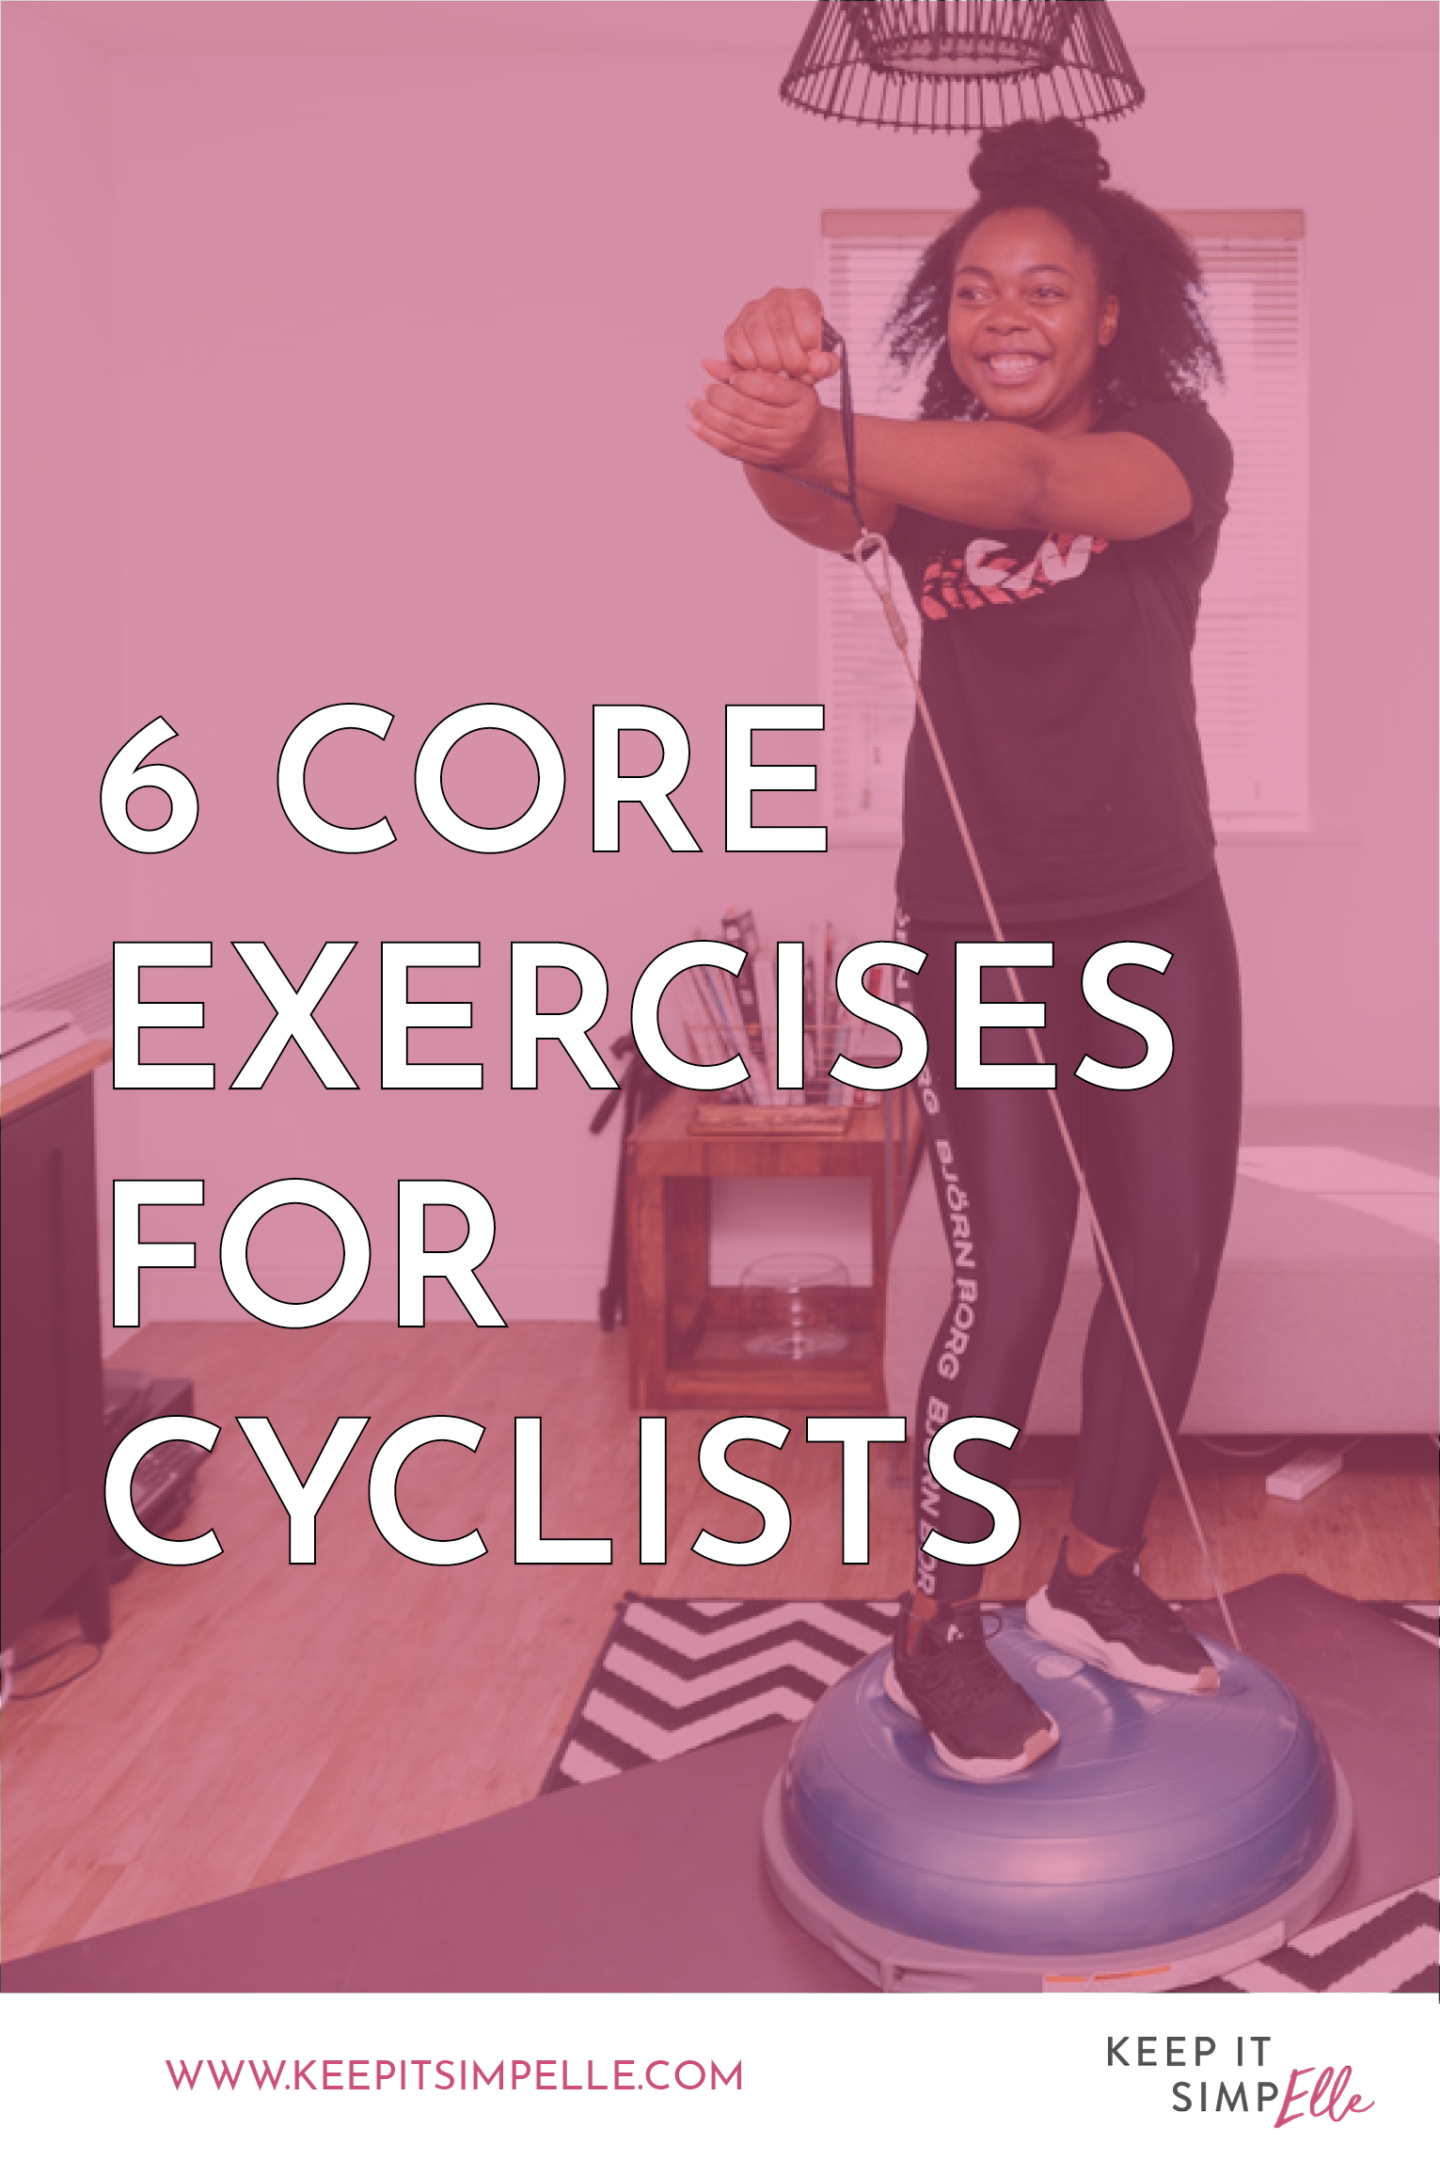 6 Core Exercises For Cyclists Pinterest Image